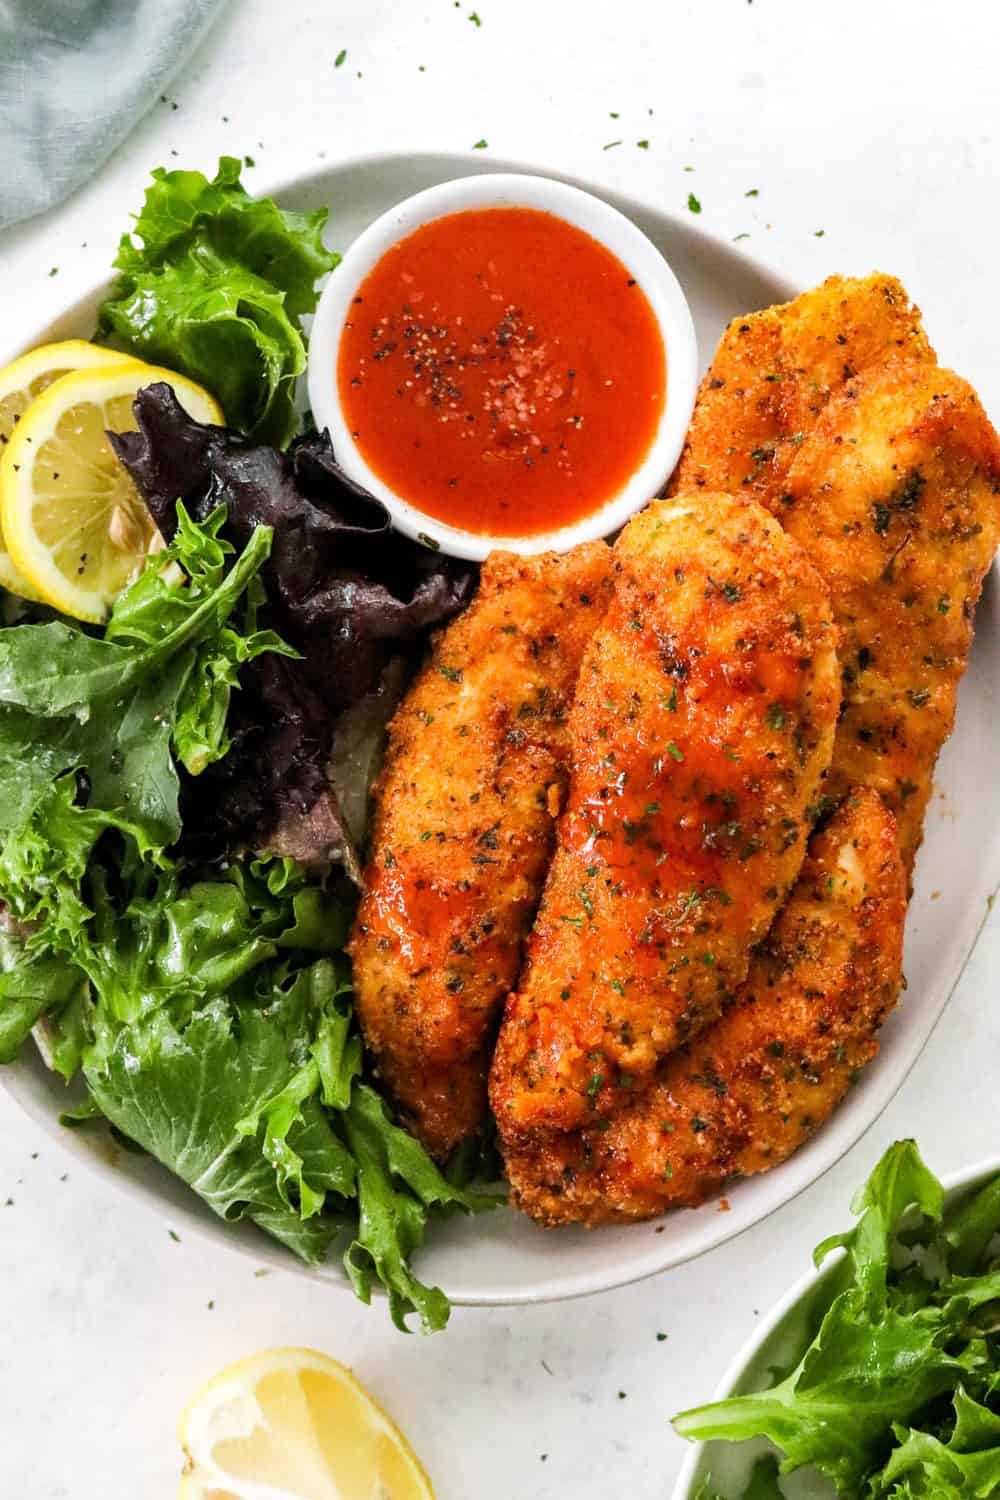 Crispy breaded chicken tenders on a round white plate with a mixed green salad and a bowl fo red sauce next tot it.